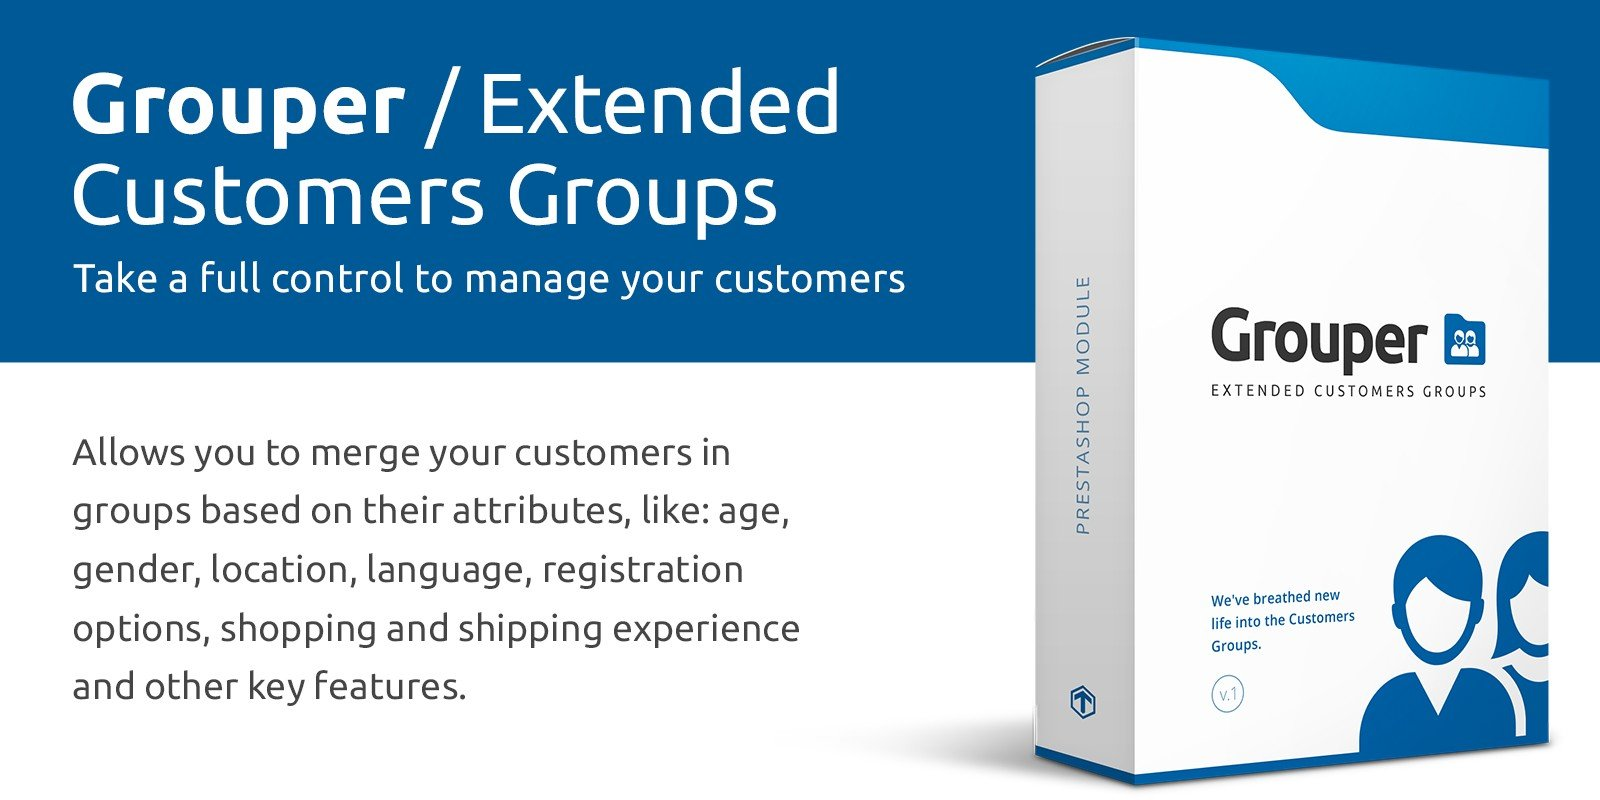 Grouper - Extended Customers Groups